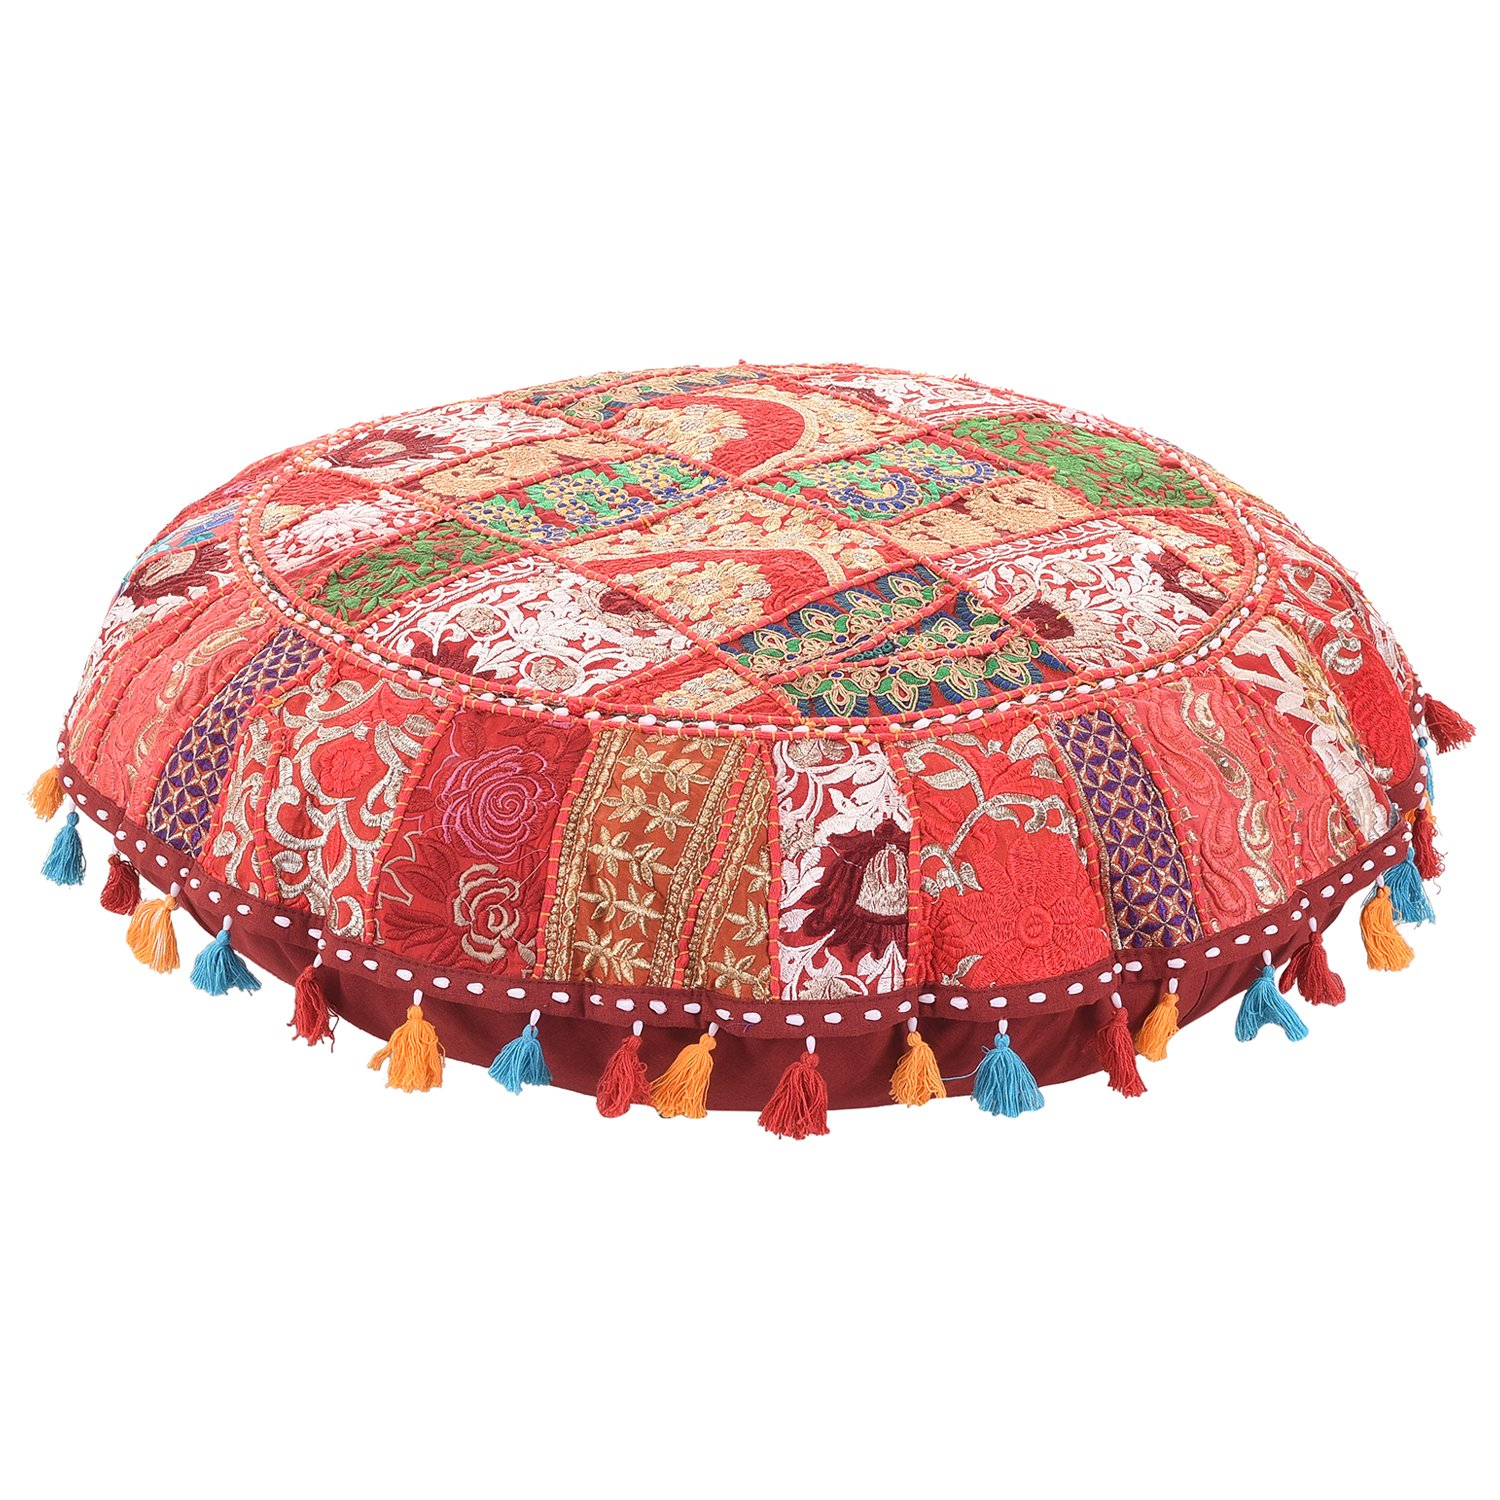 Marudhara Fashion Beautiful Decorative Ruond Ottoman Indian Patchwork Pouffe,Indian Traditional Home Decorative Handmade Cotton Ottoman Patchwork Foot Stool, Embroidered Chair Cover Vintage Pouf 32''